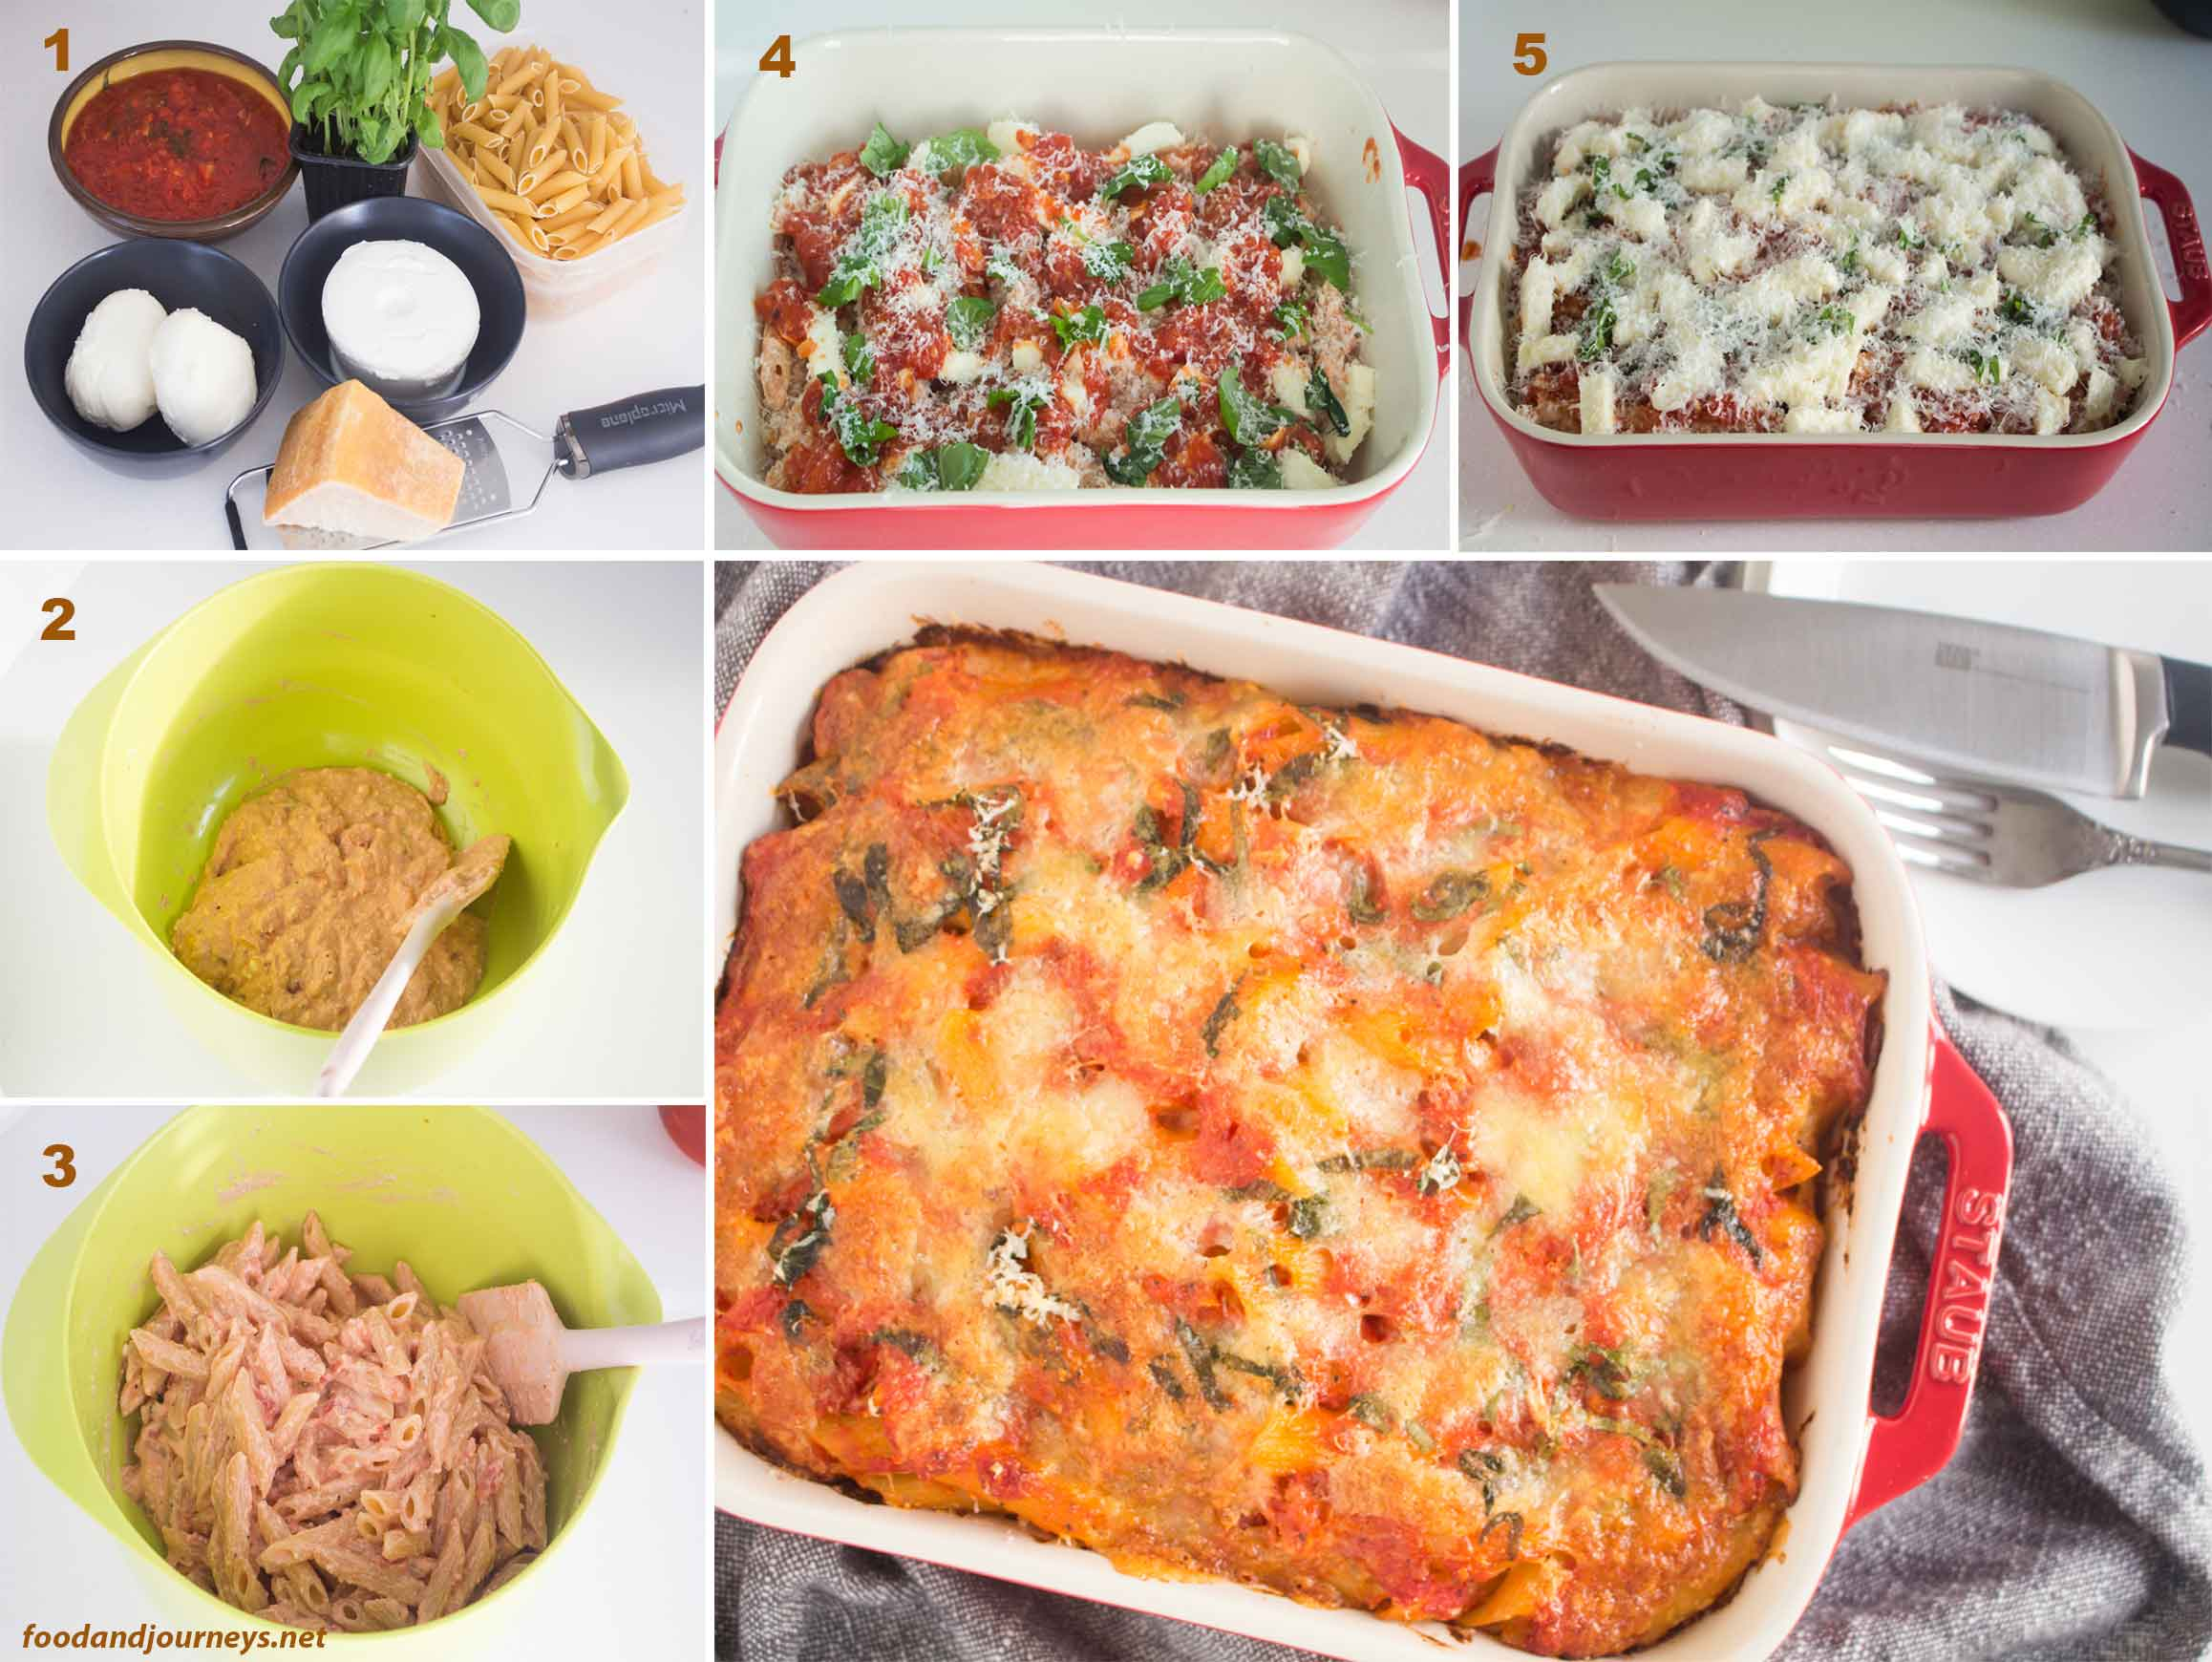 Collage showing the steps in making penne alla sorrentina.